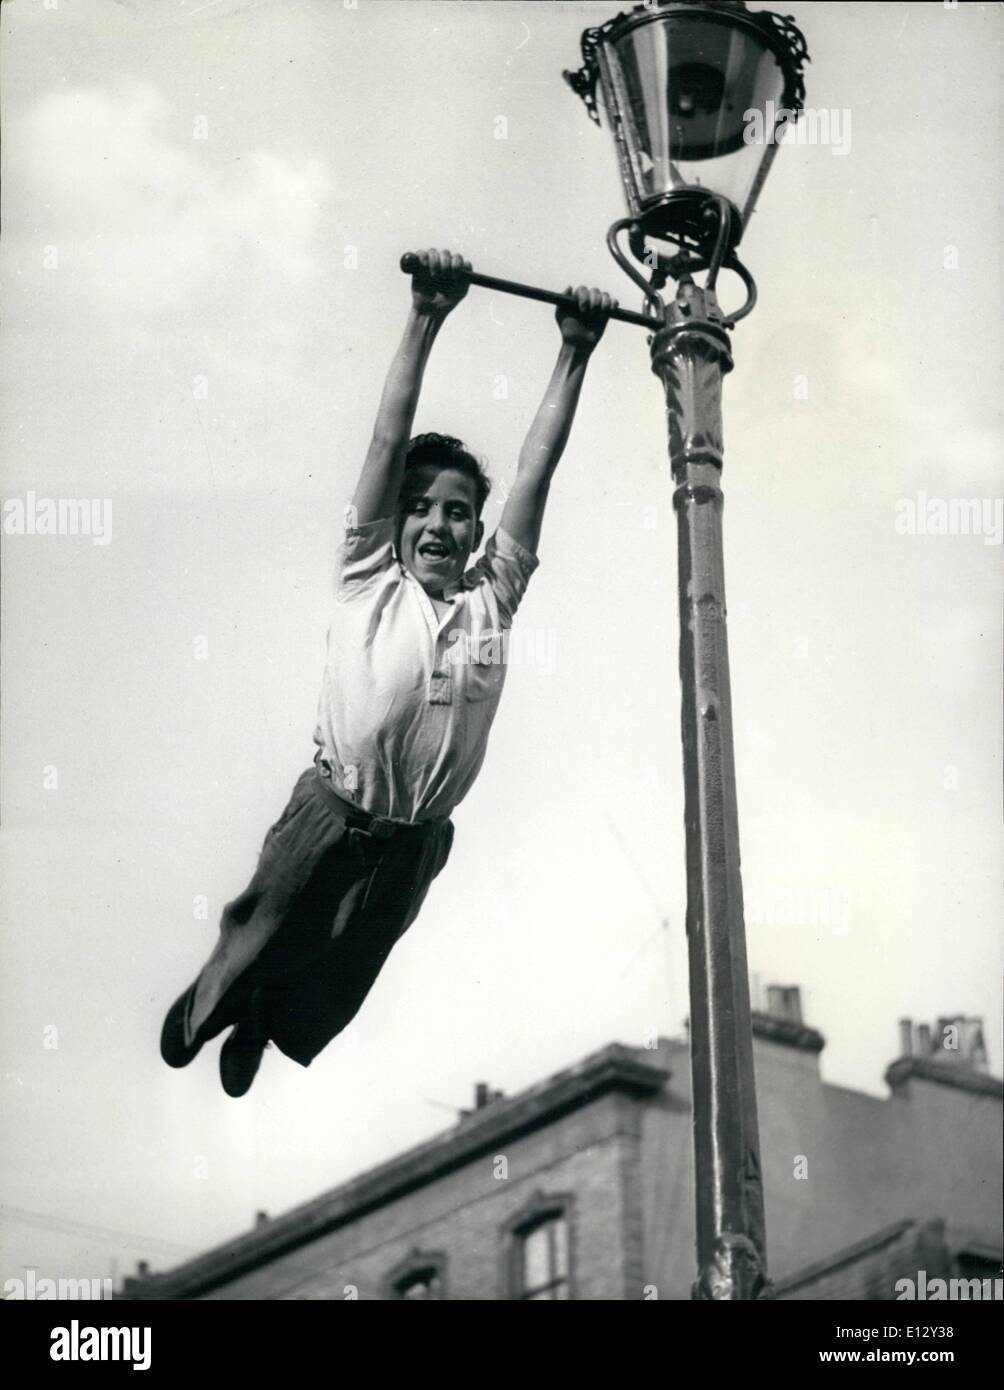 Feb. 26, 2012 - Initiative In The Play Street: There are no swings and round abouts in a Play Street, but this young - Stock Image